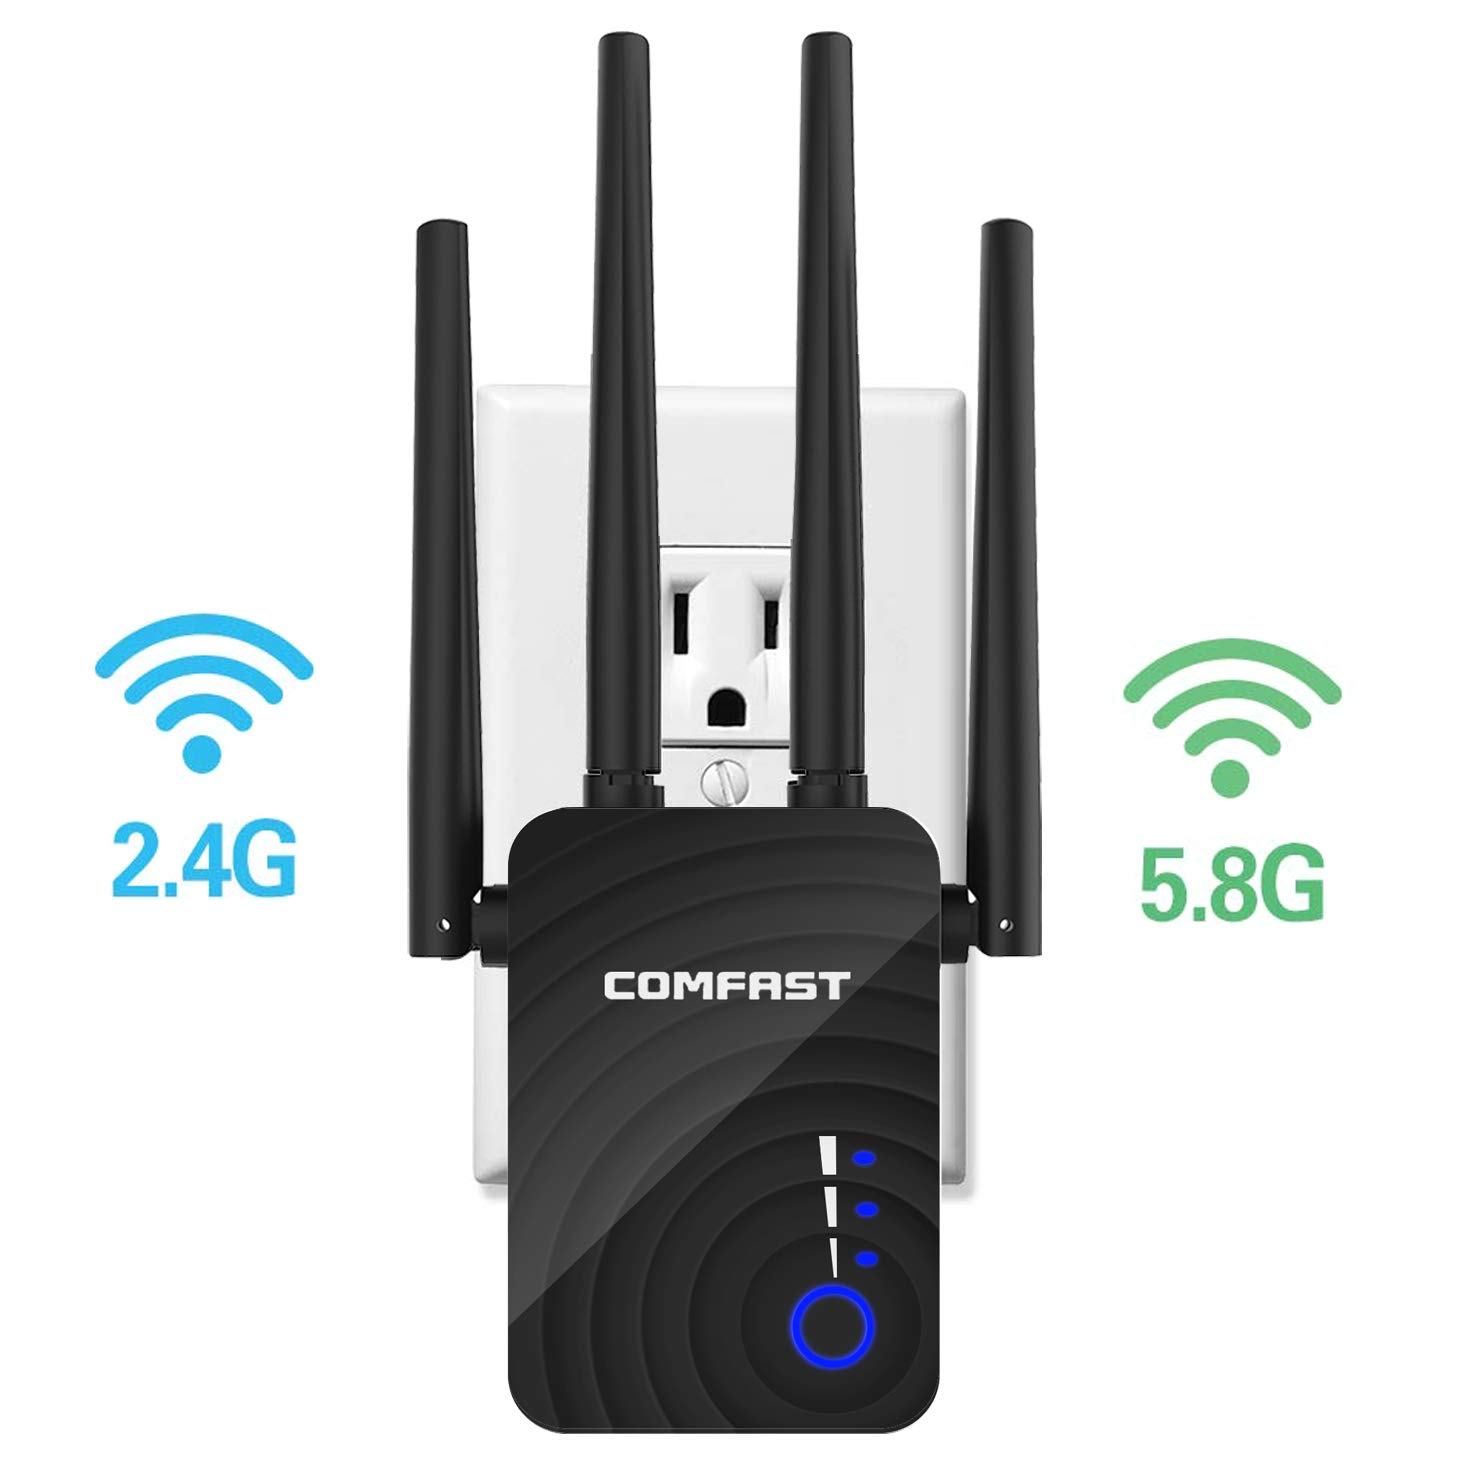 Wireless WiFi Range Extender with 5GHz & 2.4GHz Dual Band Up to 1200Mbps High Speed, WiFi Signal Booster Amplifier with with AP/Repeater/Router Mode for Home Office (Black) by UTOPB